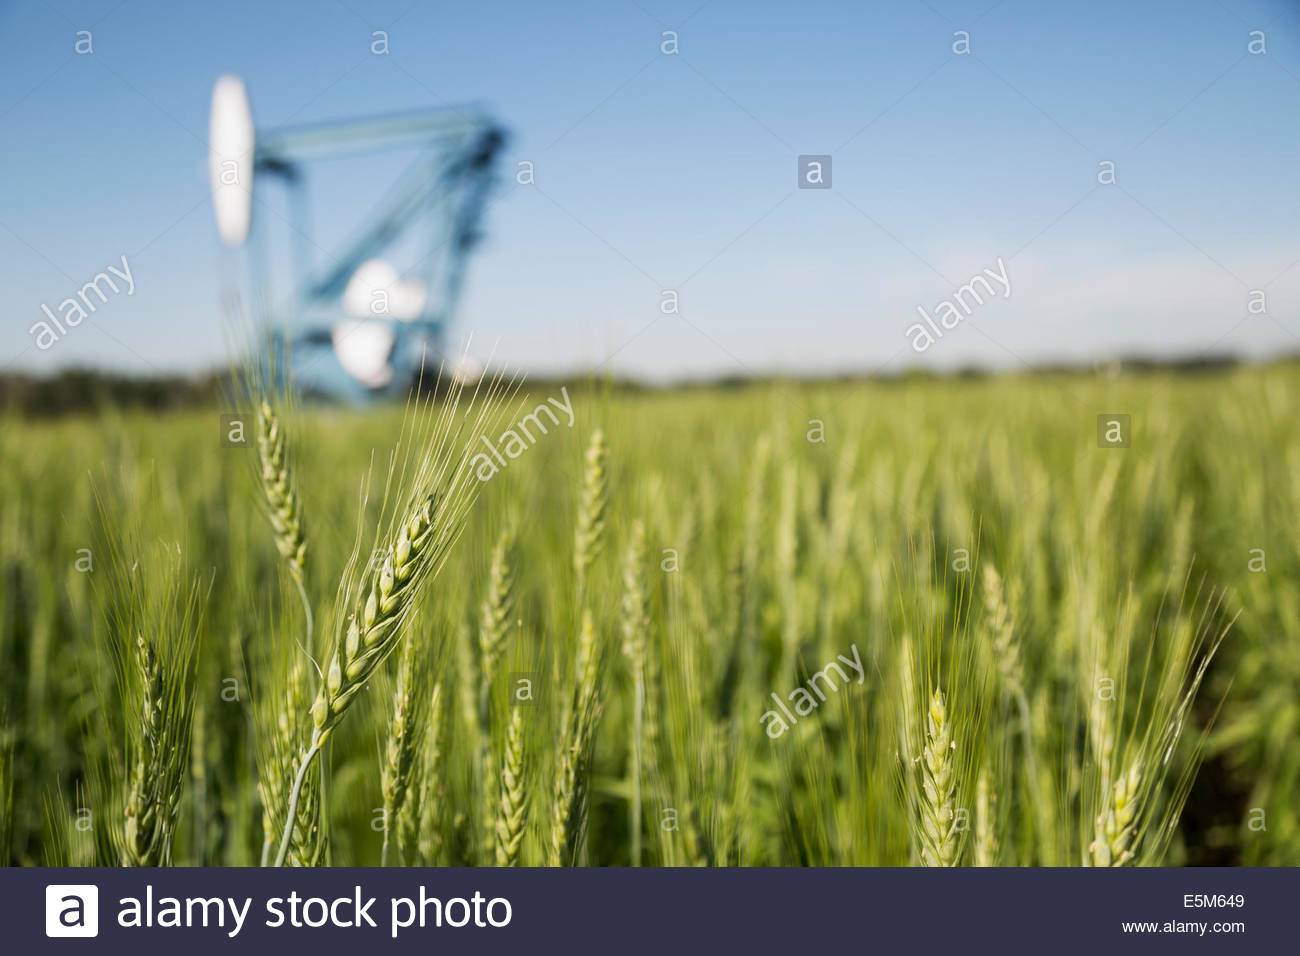 Oil well in background of green wheat field - Stock Image